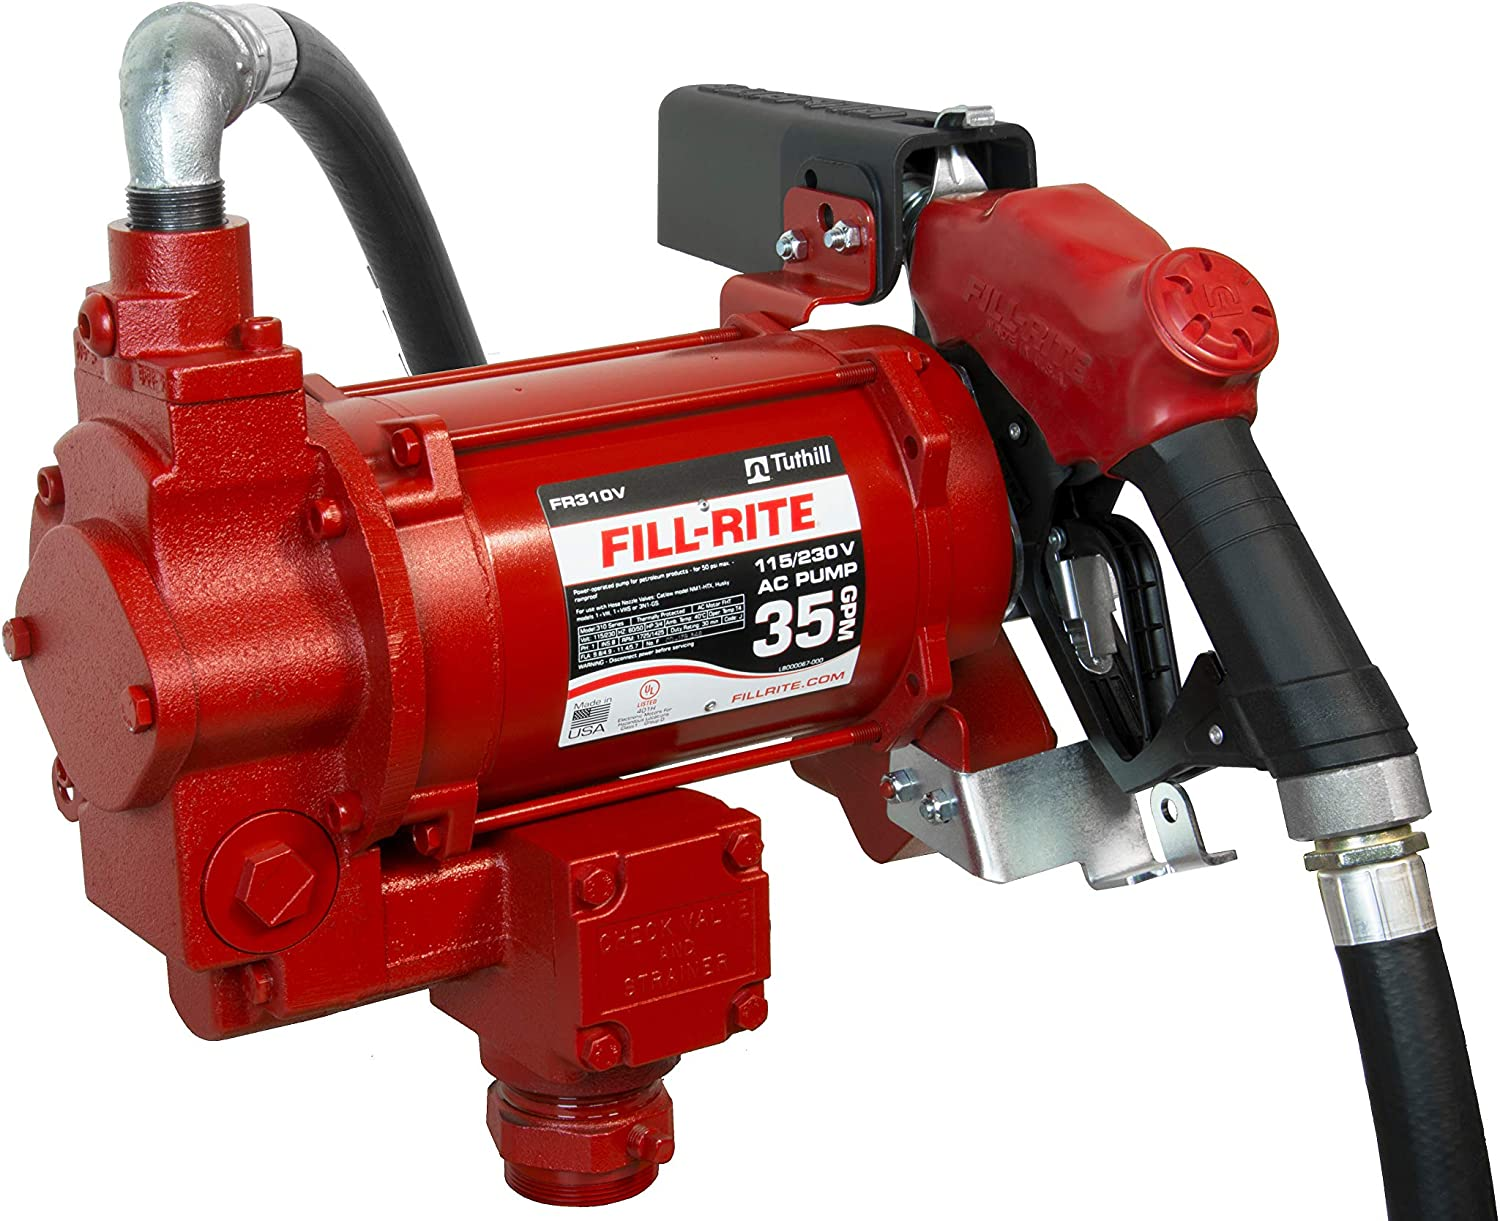 Automatic Nozzle Fill-Rite FR310VB 115//230V 35 GPM Fuel Transfer Pump with Discharge Hose